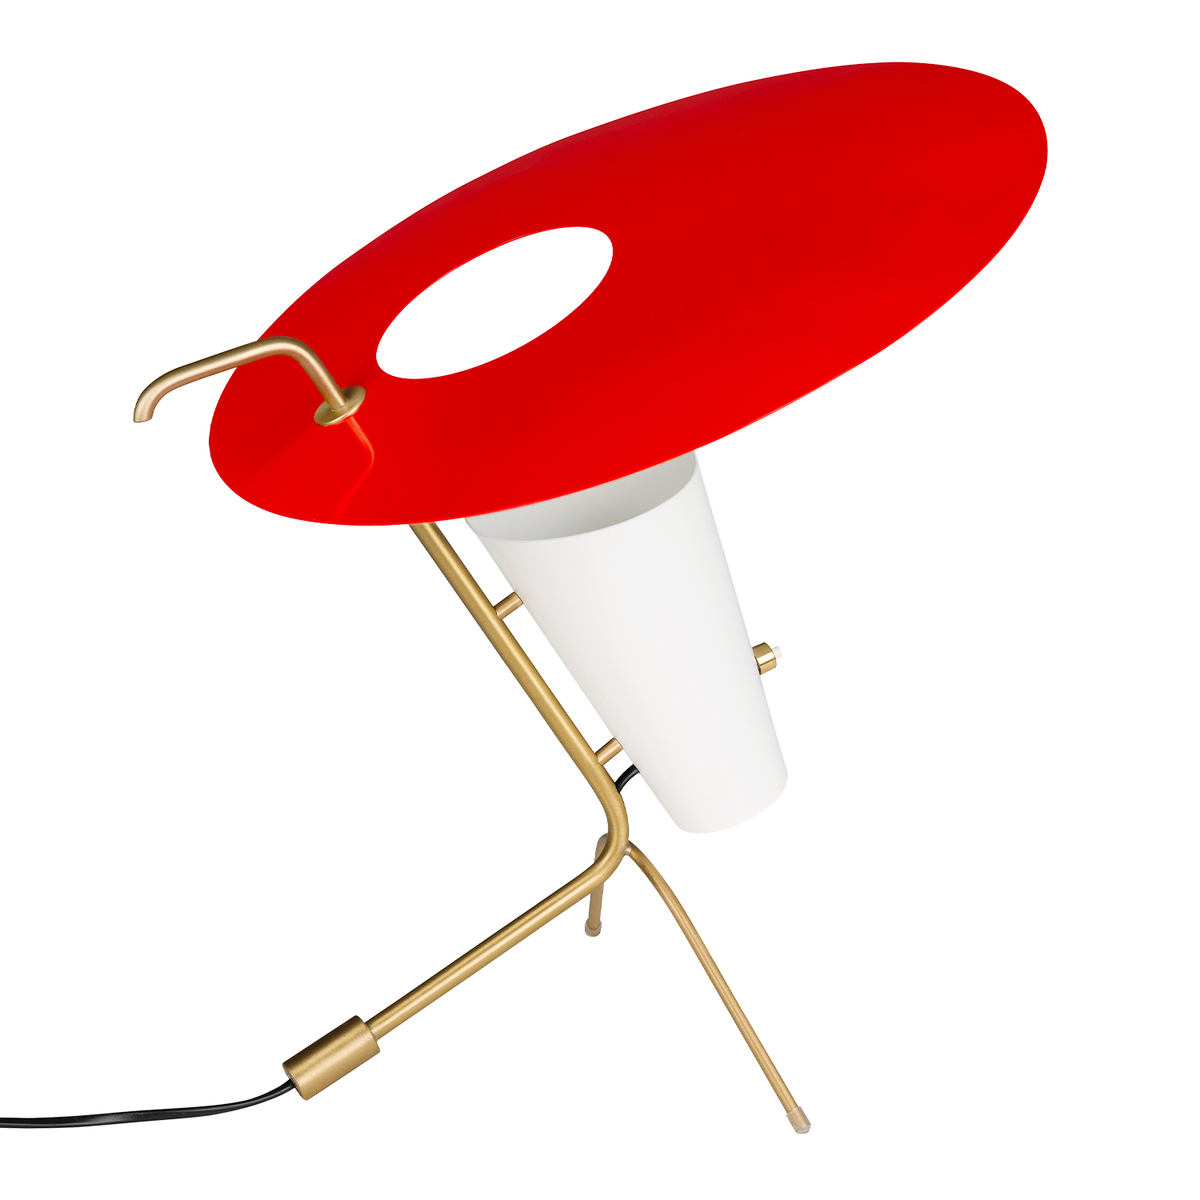 Sammode G24 Table Lamp, Vermilion Red